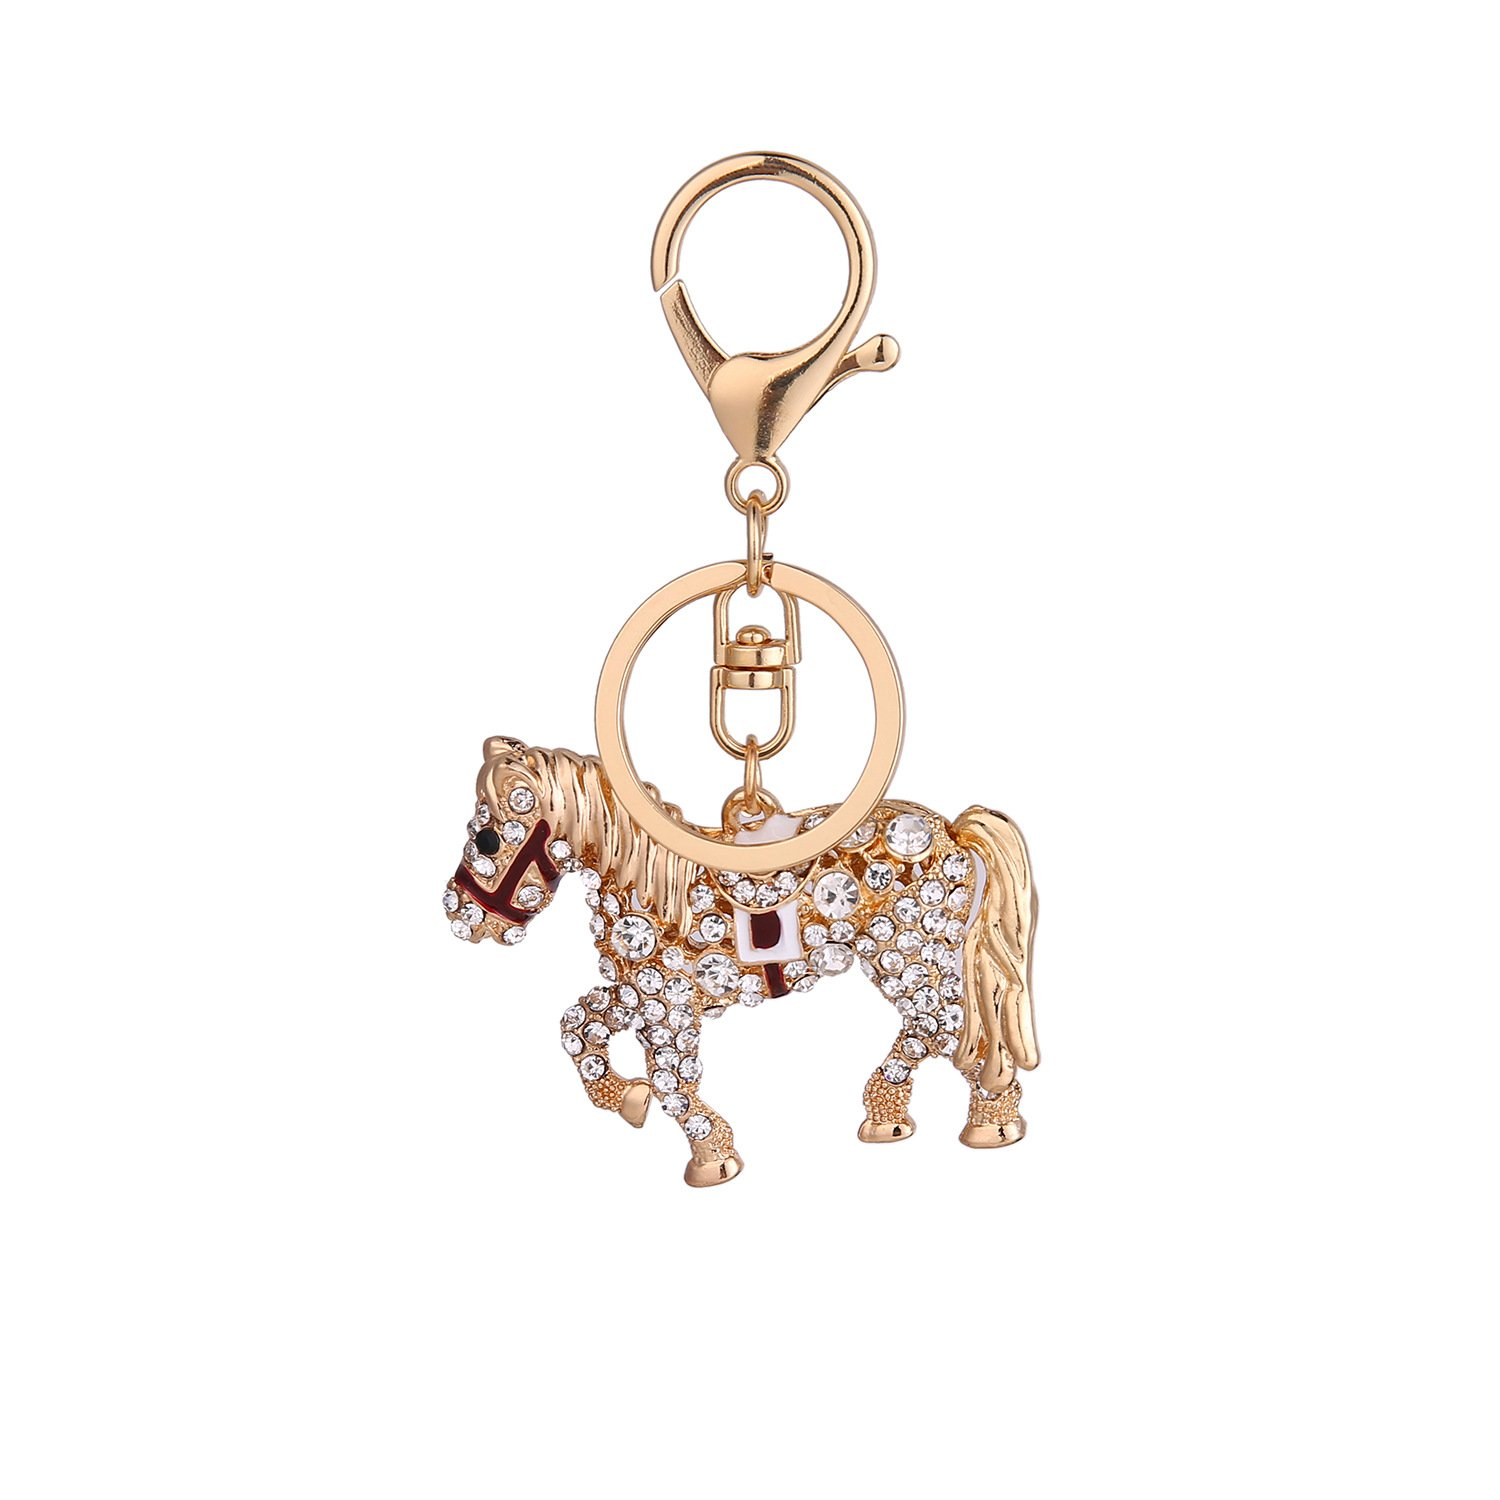 DYbaby Bling Bling Crystal Keychain Lovely Handbag Decoration Car Key Decoration for Womens and Girls (Horse)